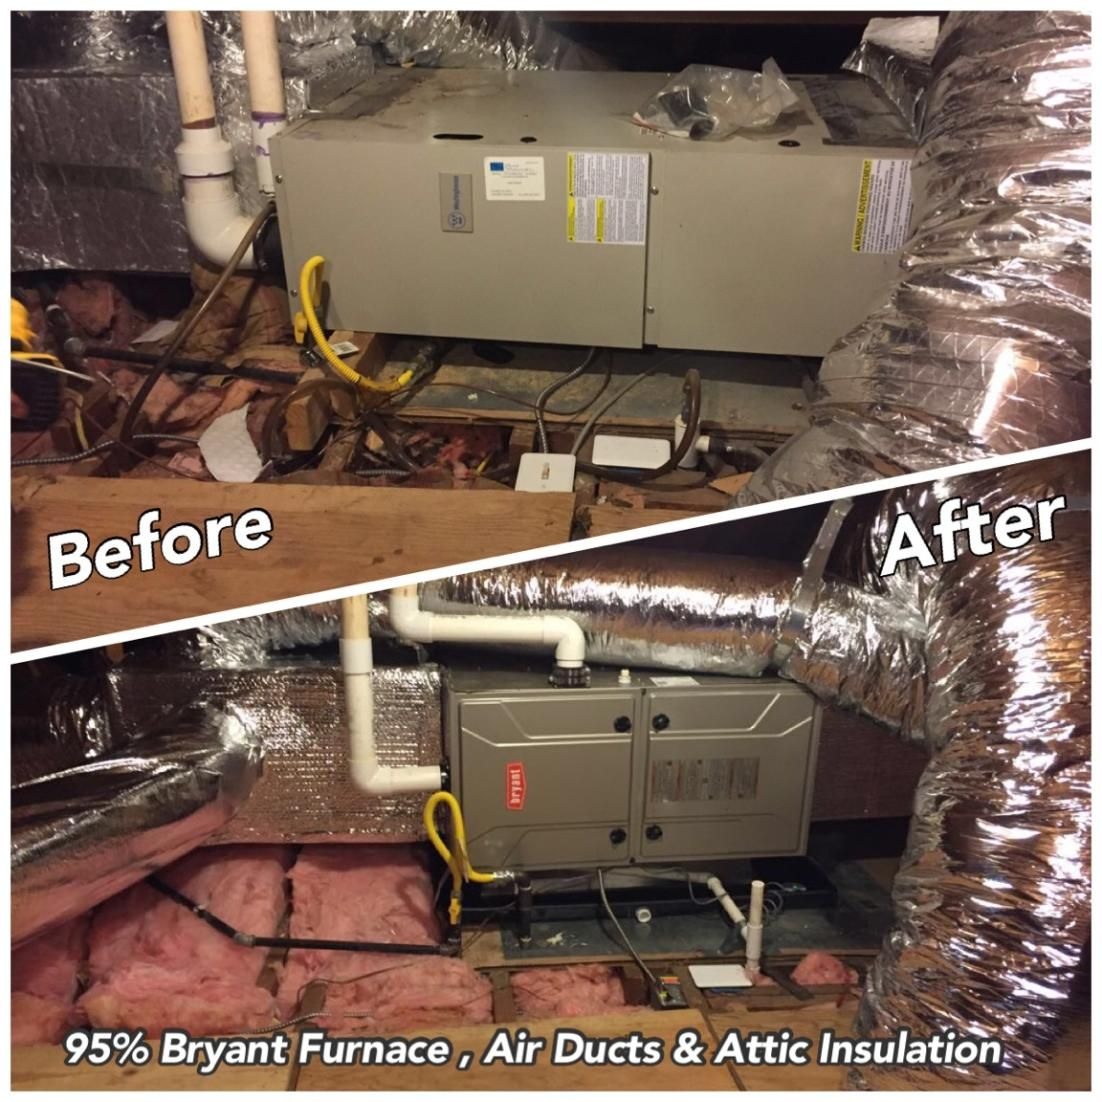 medium resolution of before after photos of a bryant furnace air ducts and attic insulation installation in redwood city ca great job team